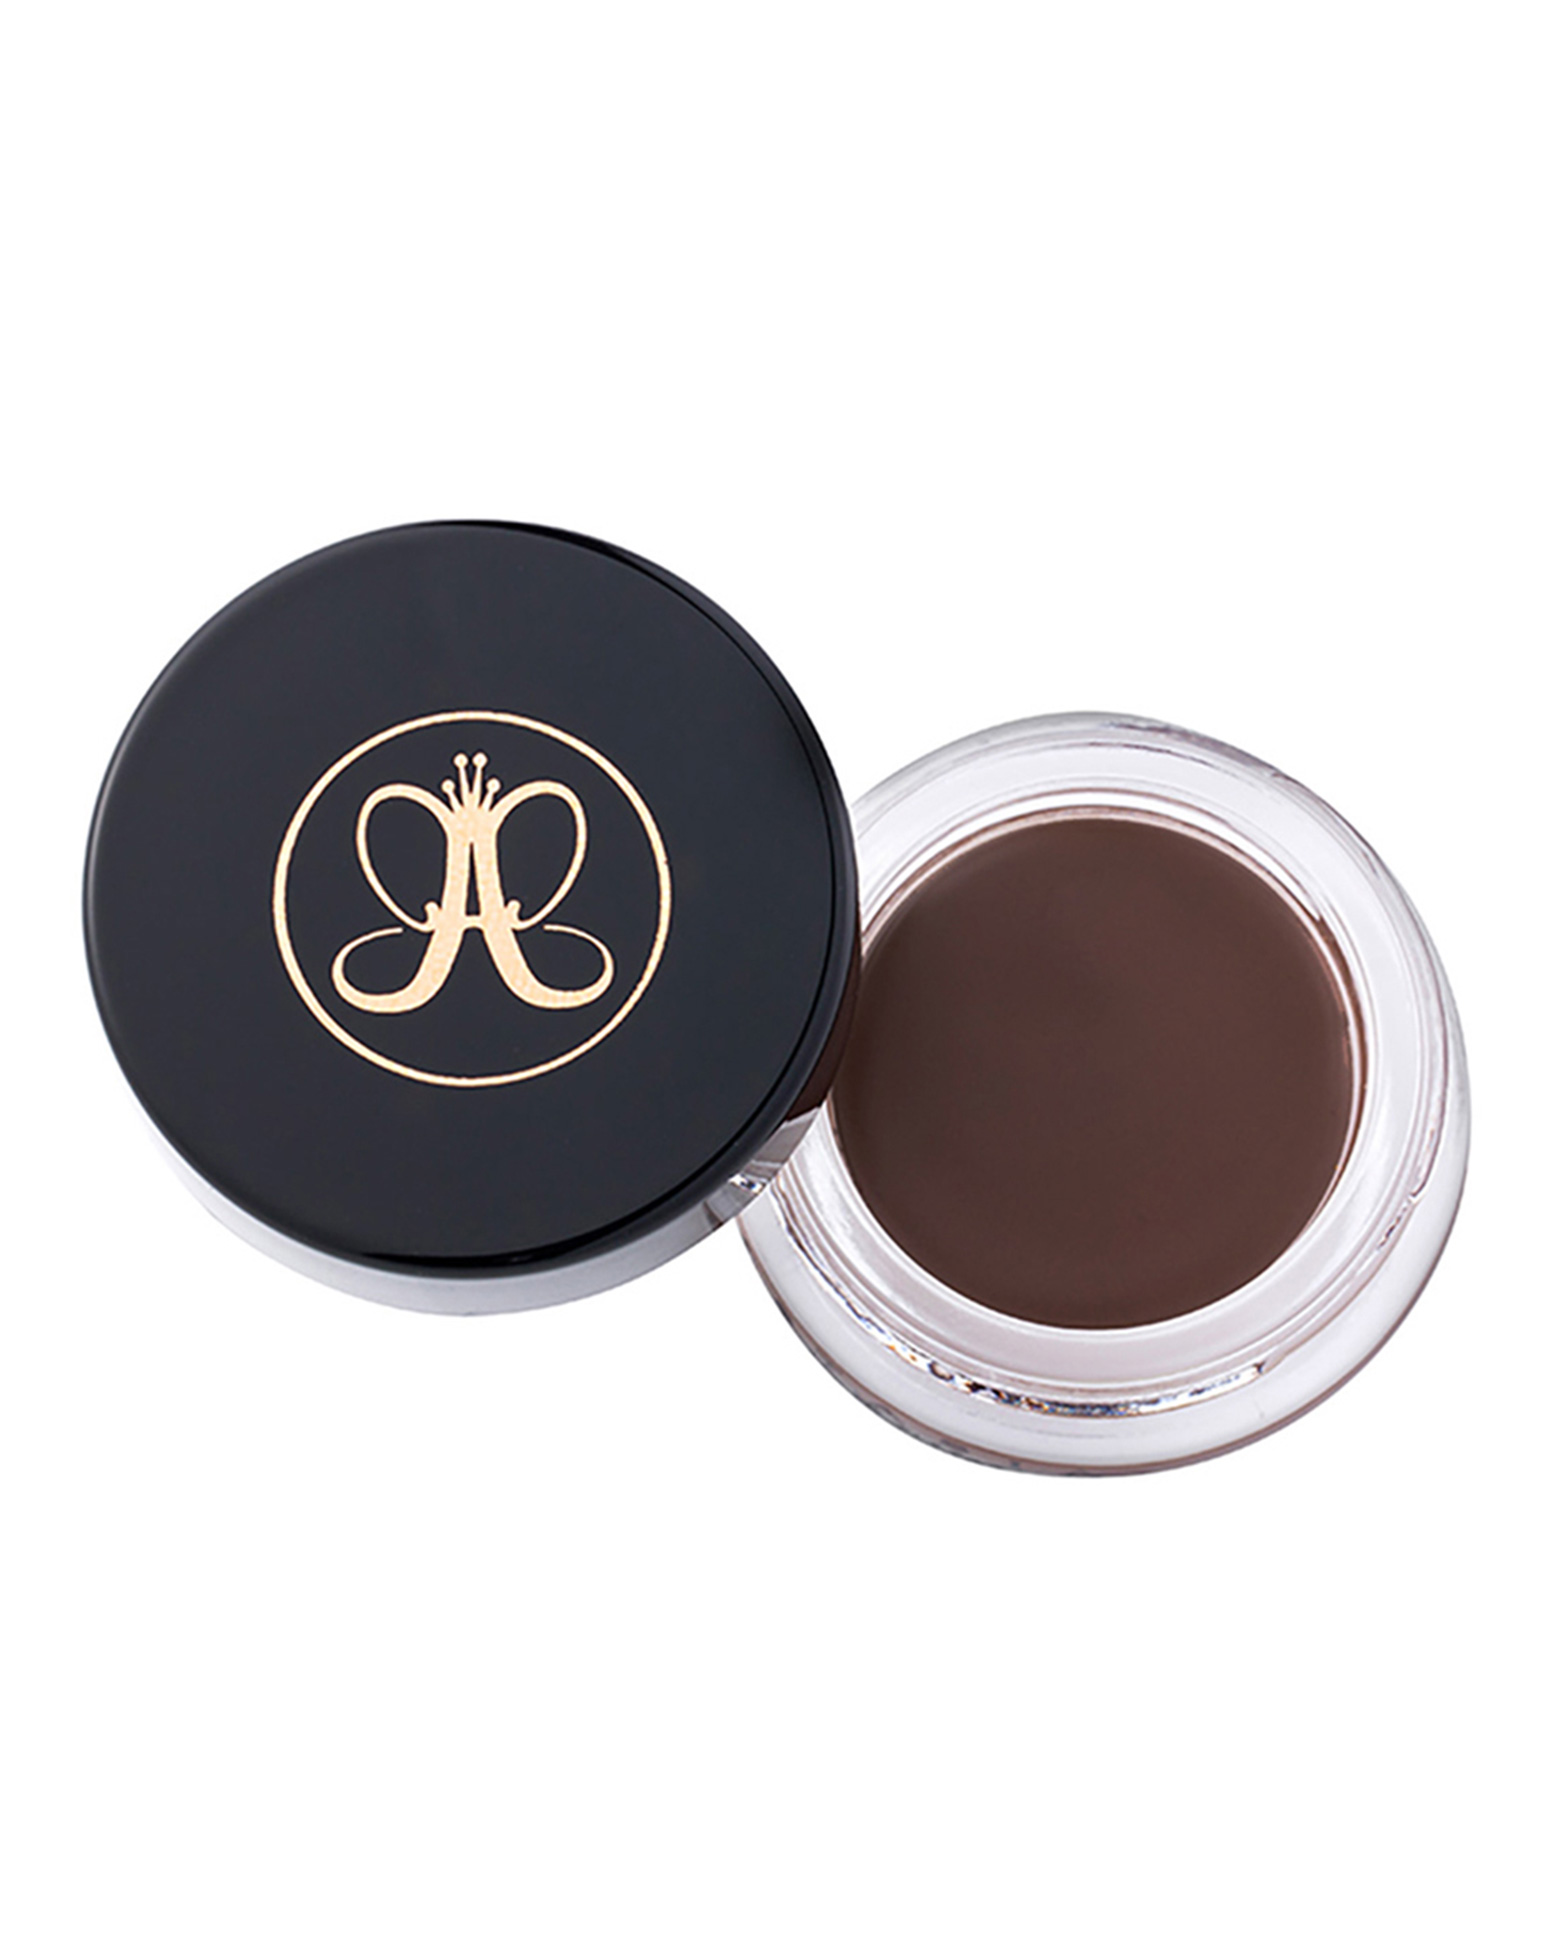 dipbrow pomade